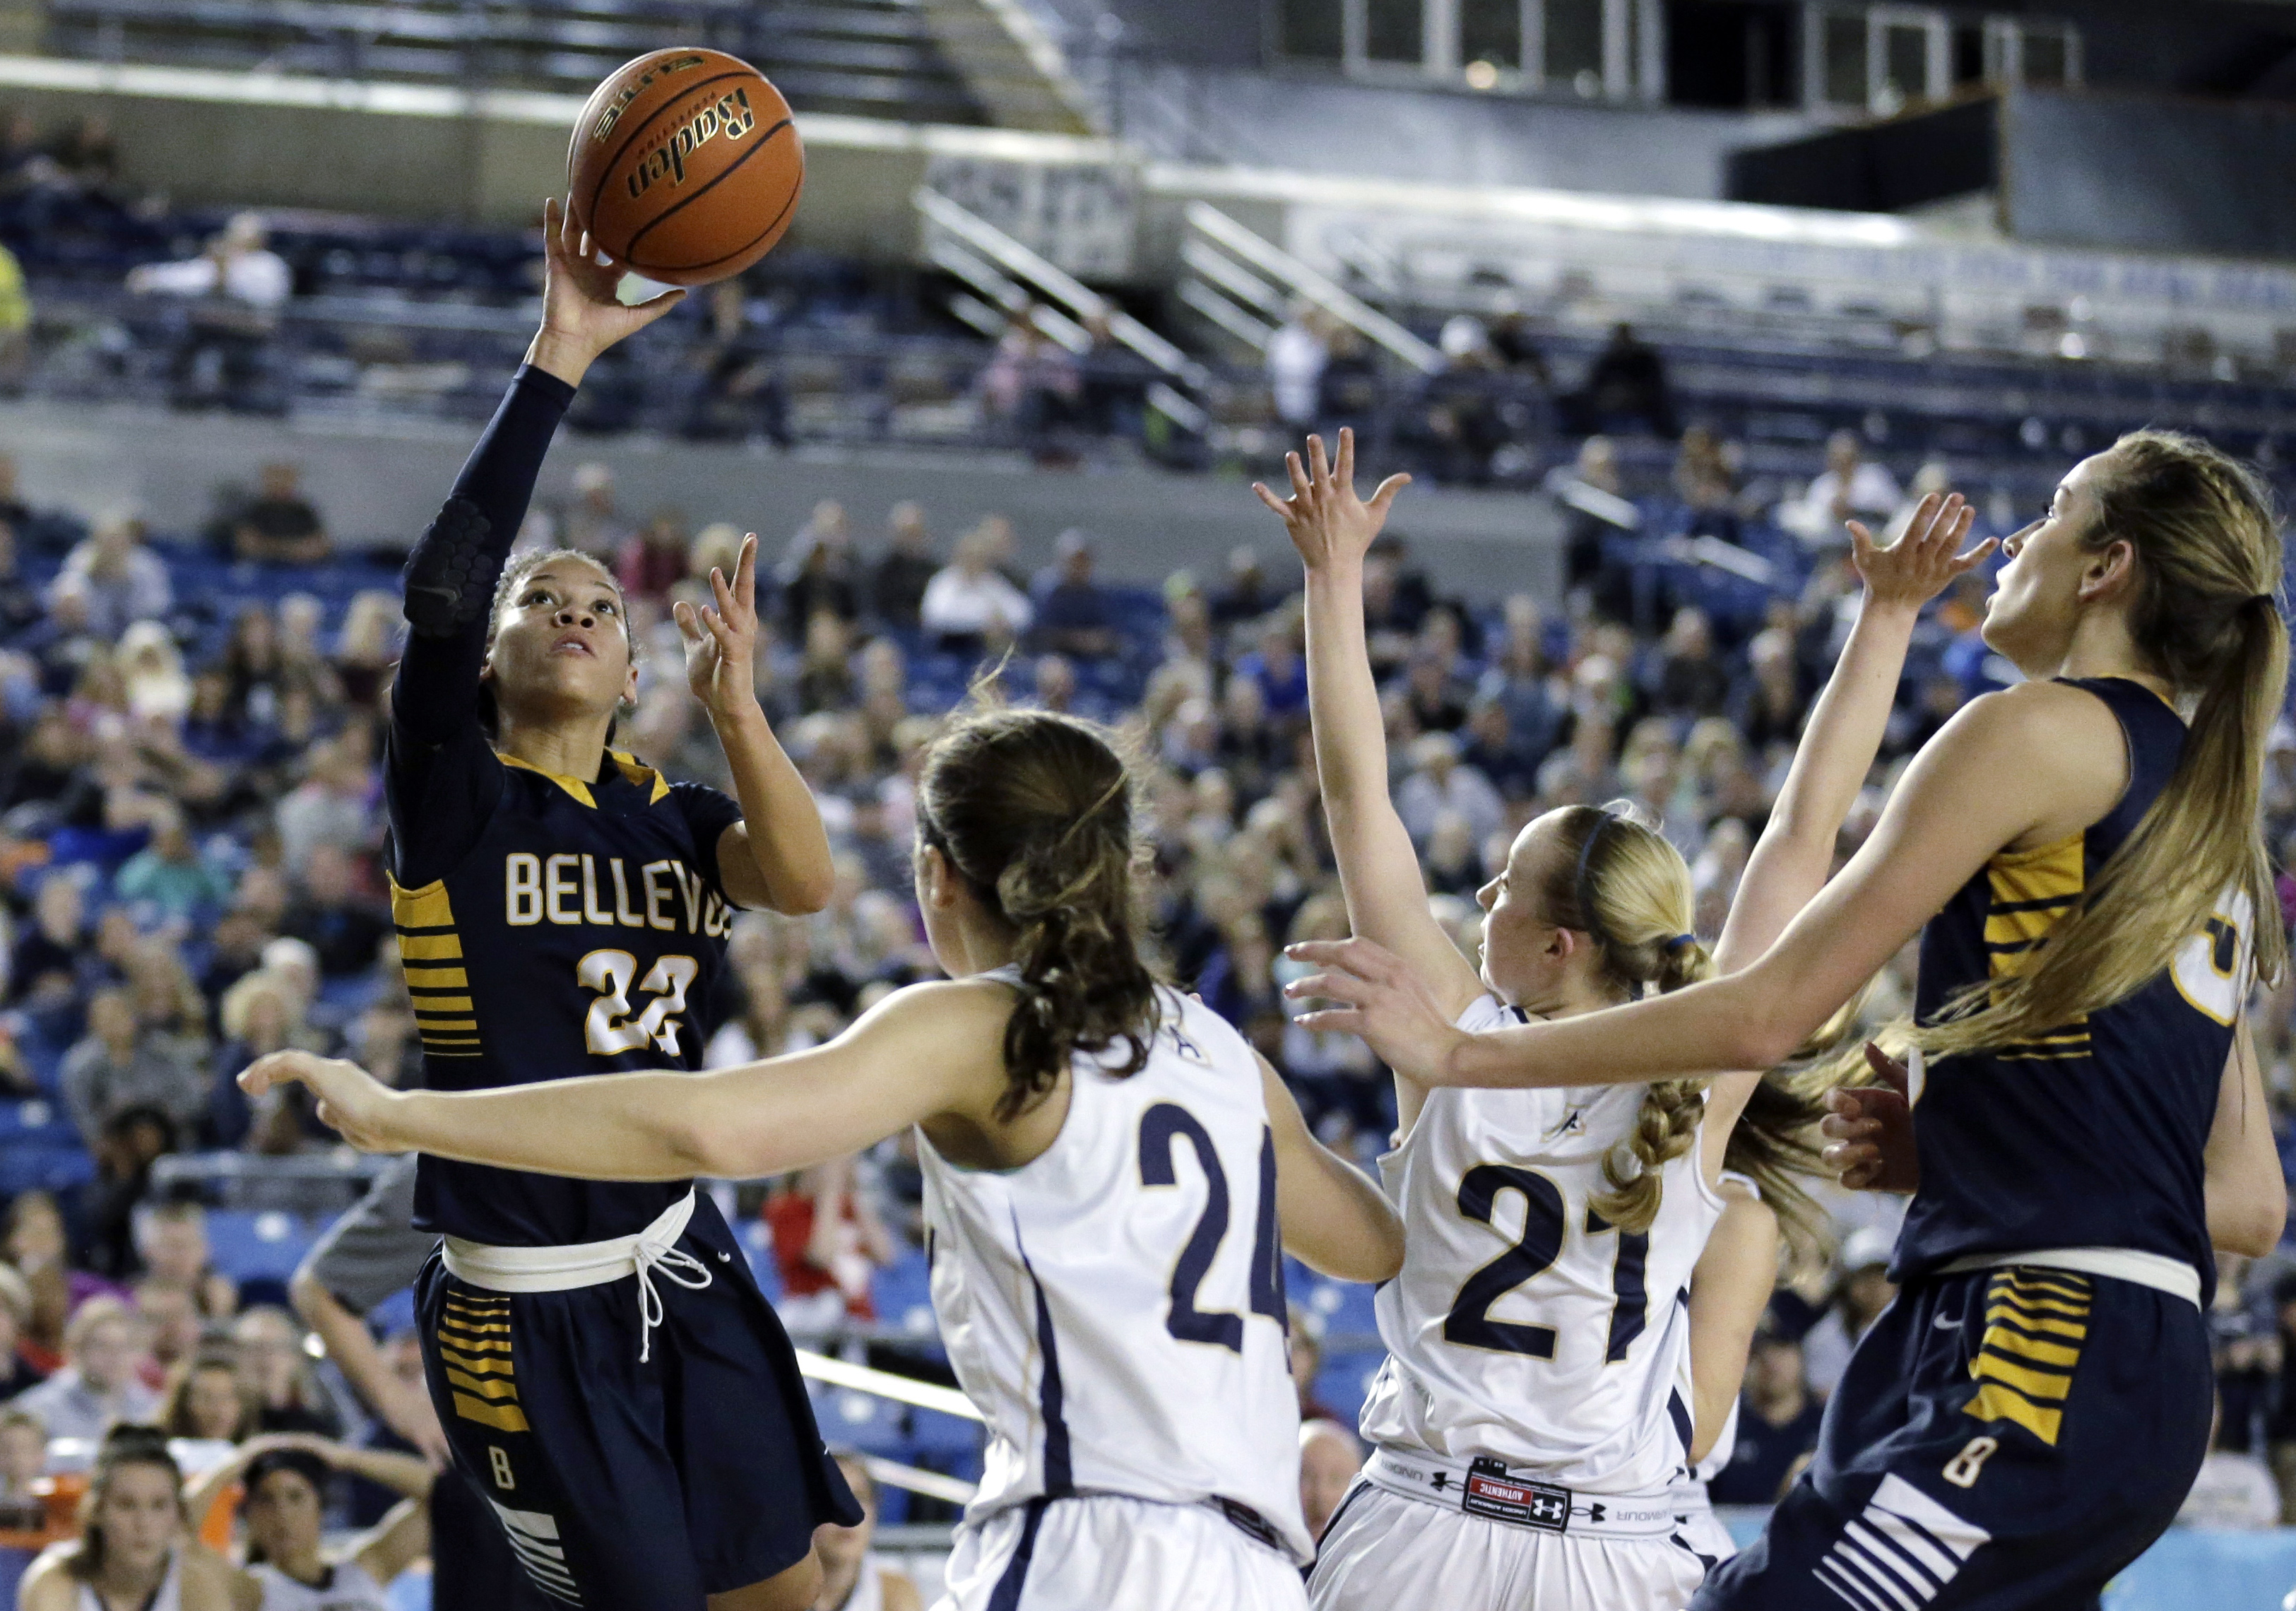 Anna Wilson led Bellevue (Wash.) High School to a state title earlier this month. (Photo: AP)